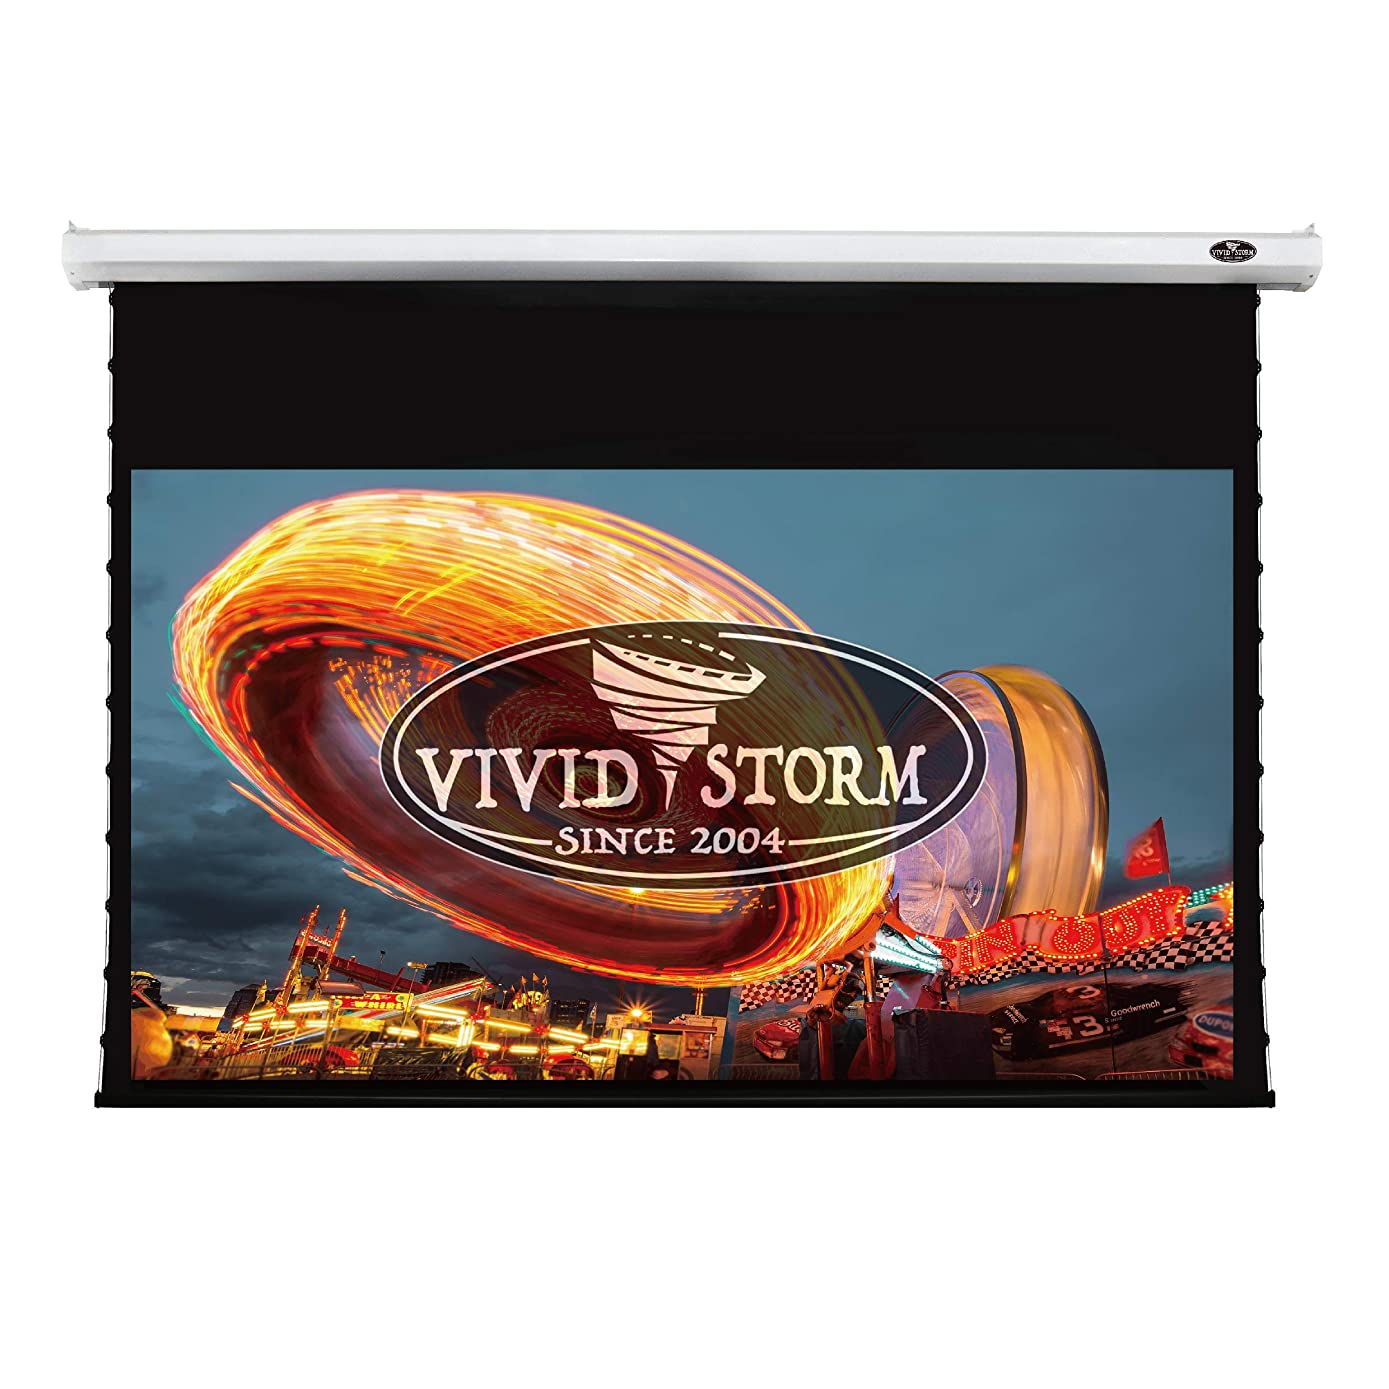 VIVIDSTORM 4K/3D/UHD Deluxe Tab-tensioned Screen,Electric Drop Down Projector Screen,100-inch Diagonal 16:9, with White V Cinema PVC Screen Material, Wireless 12V Projector Trigger,Model: V6JLW100H